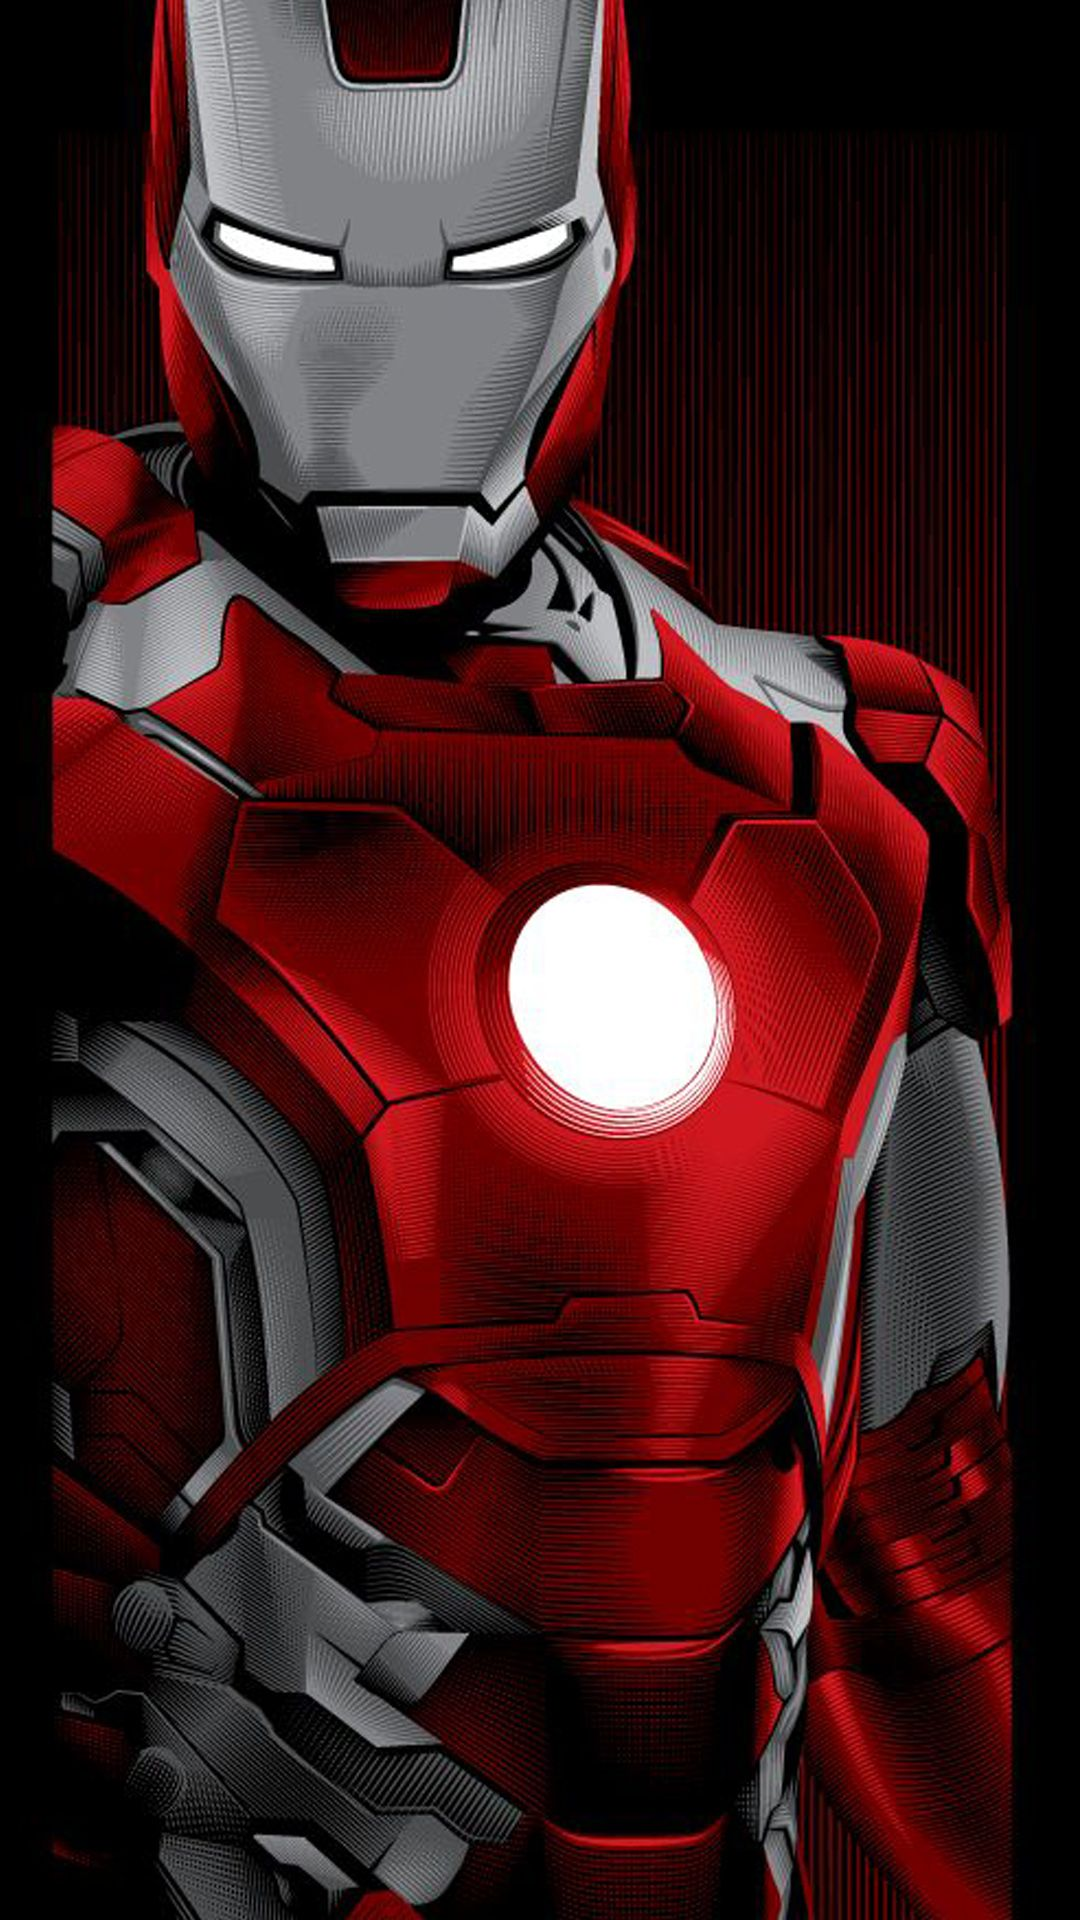 Ironman Iphone Wallpaper HD Iron man wallpaper, Iron man